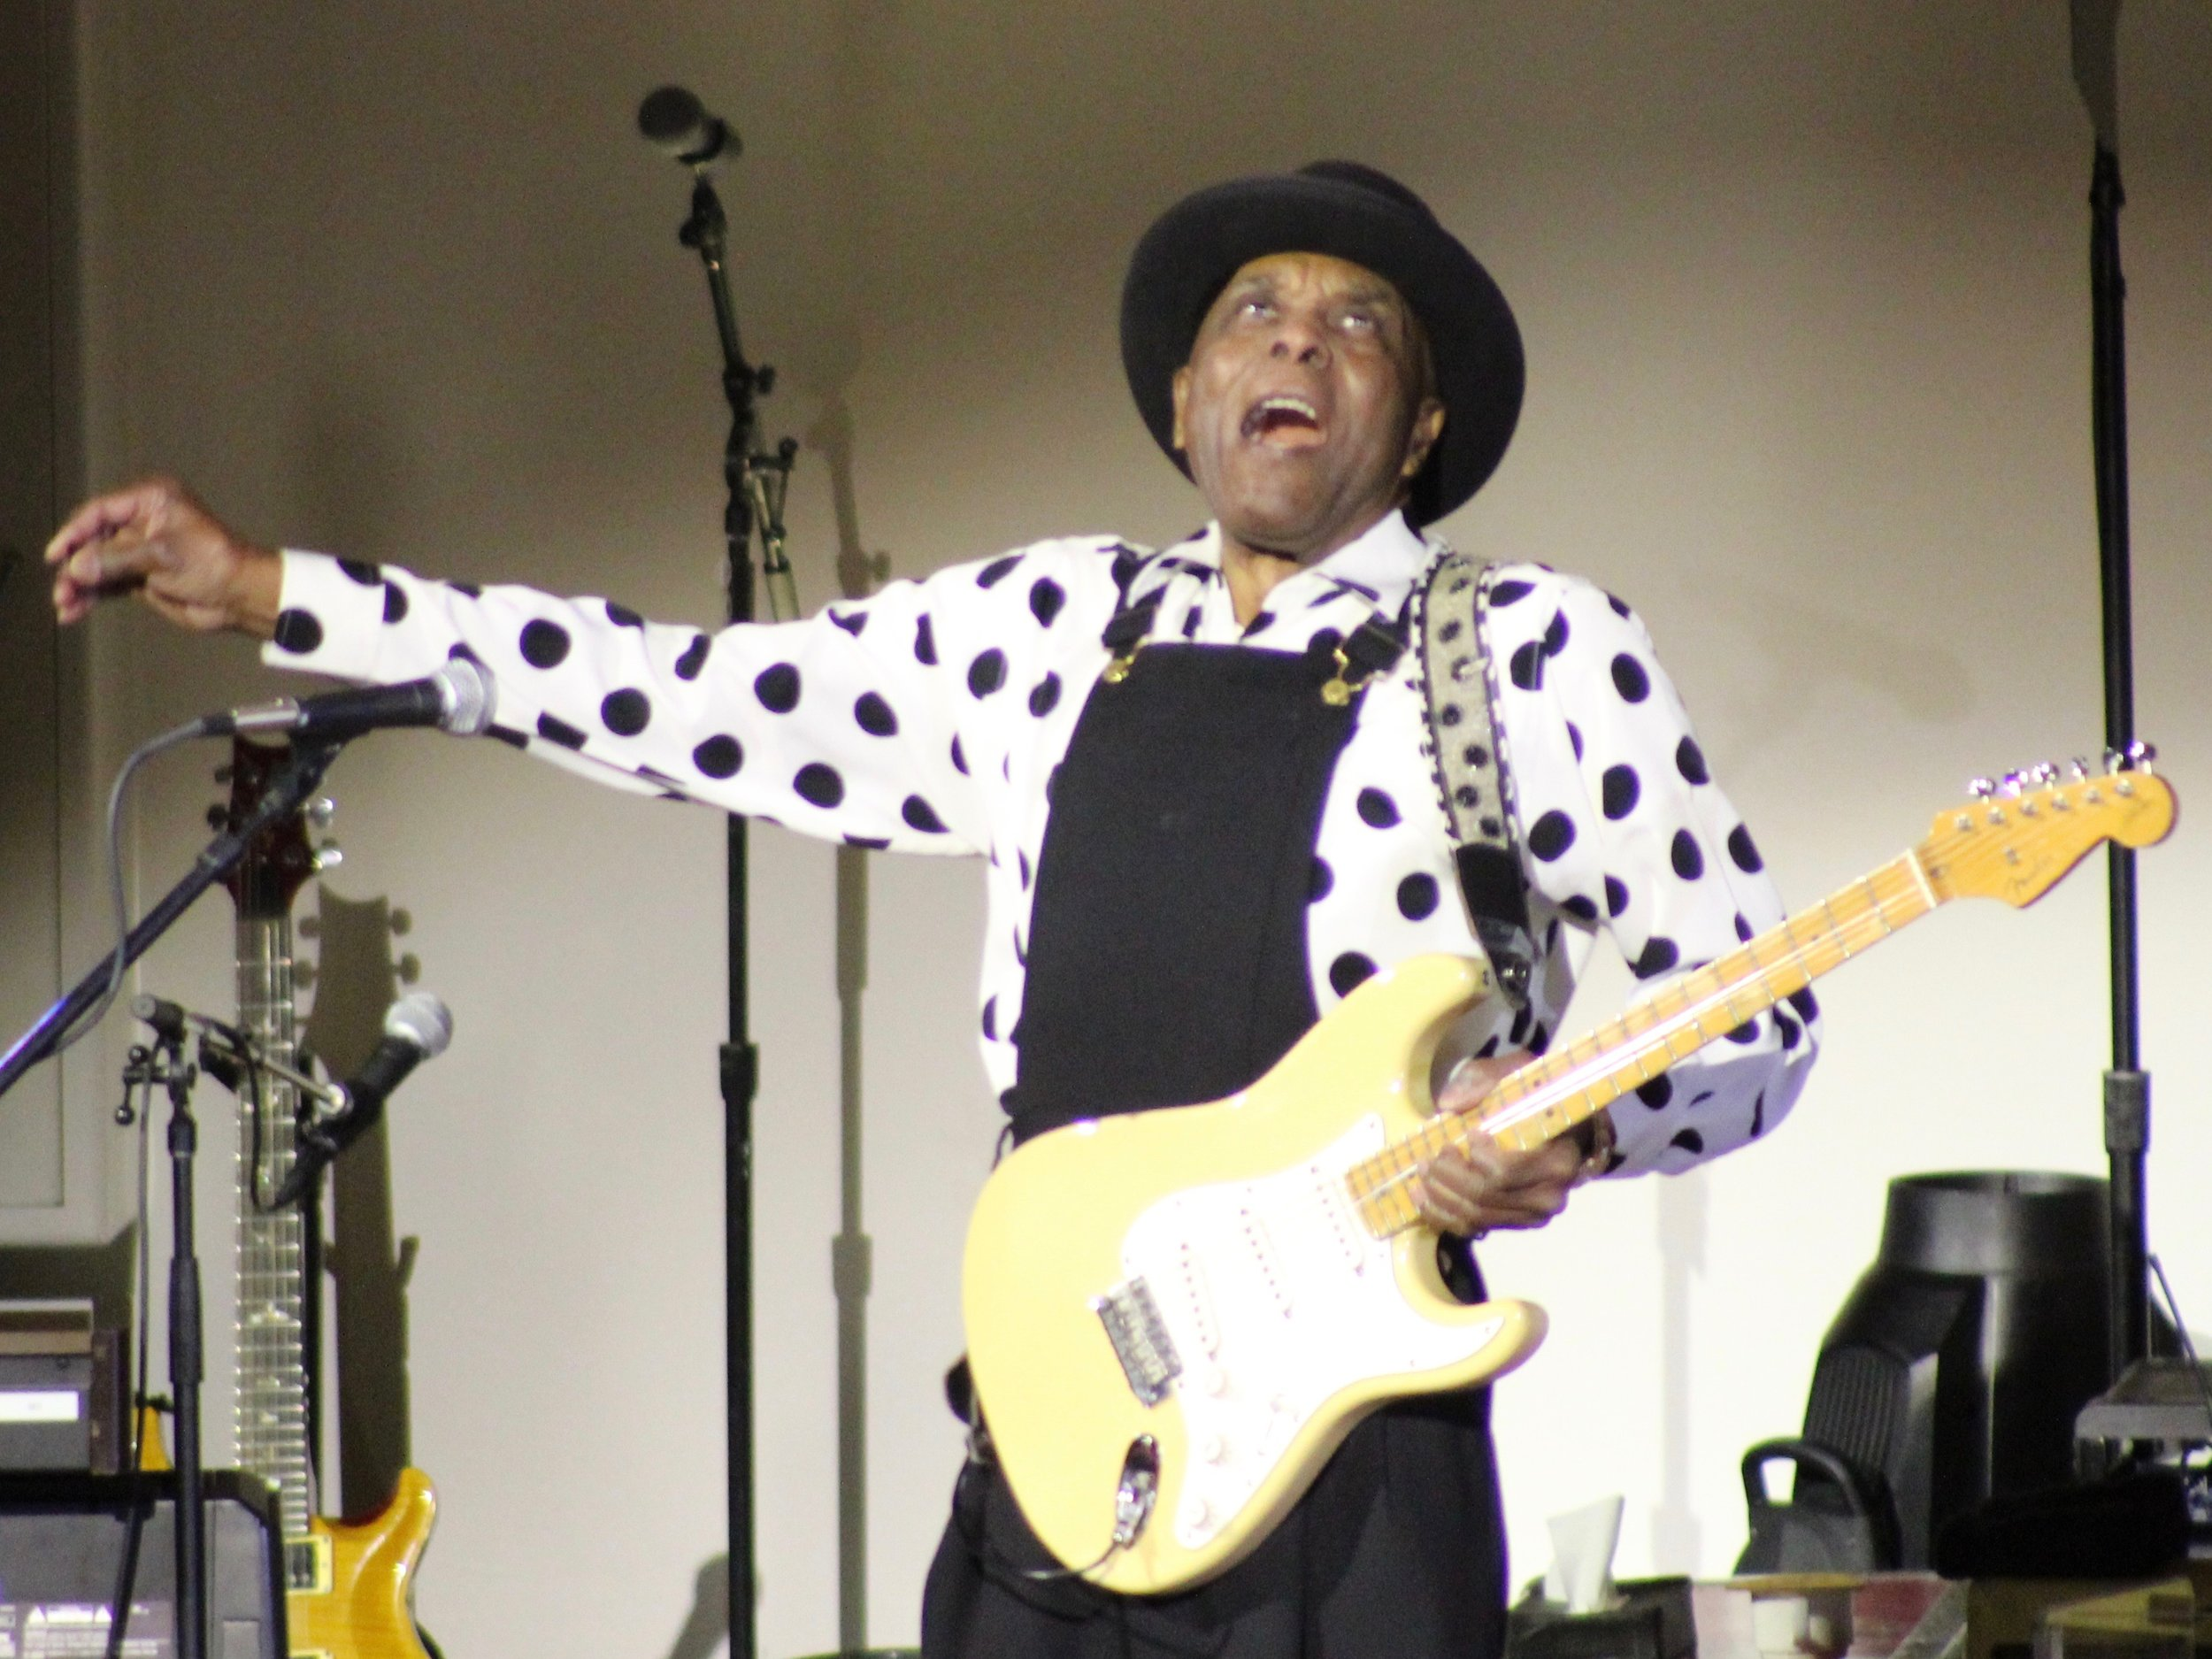 Blues artist Buddy Guy was the headline act at the Illinois bicentennial celebration. (One Illinois/Ted Cox)